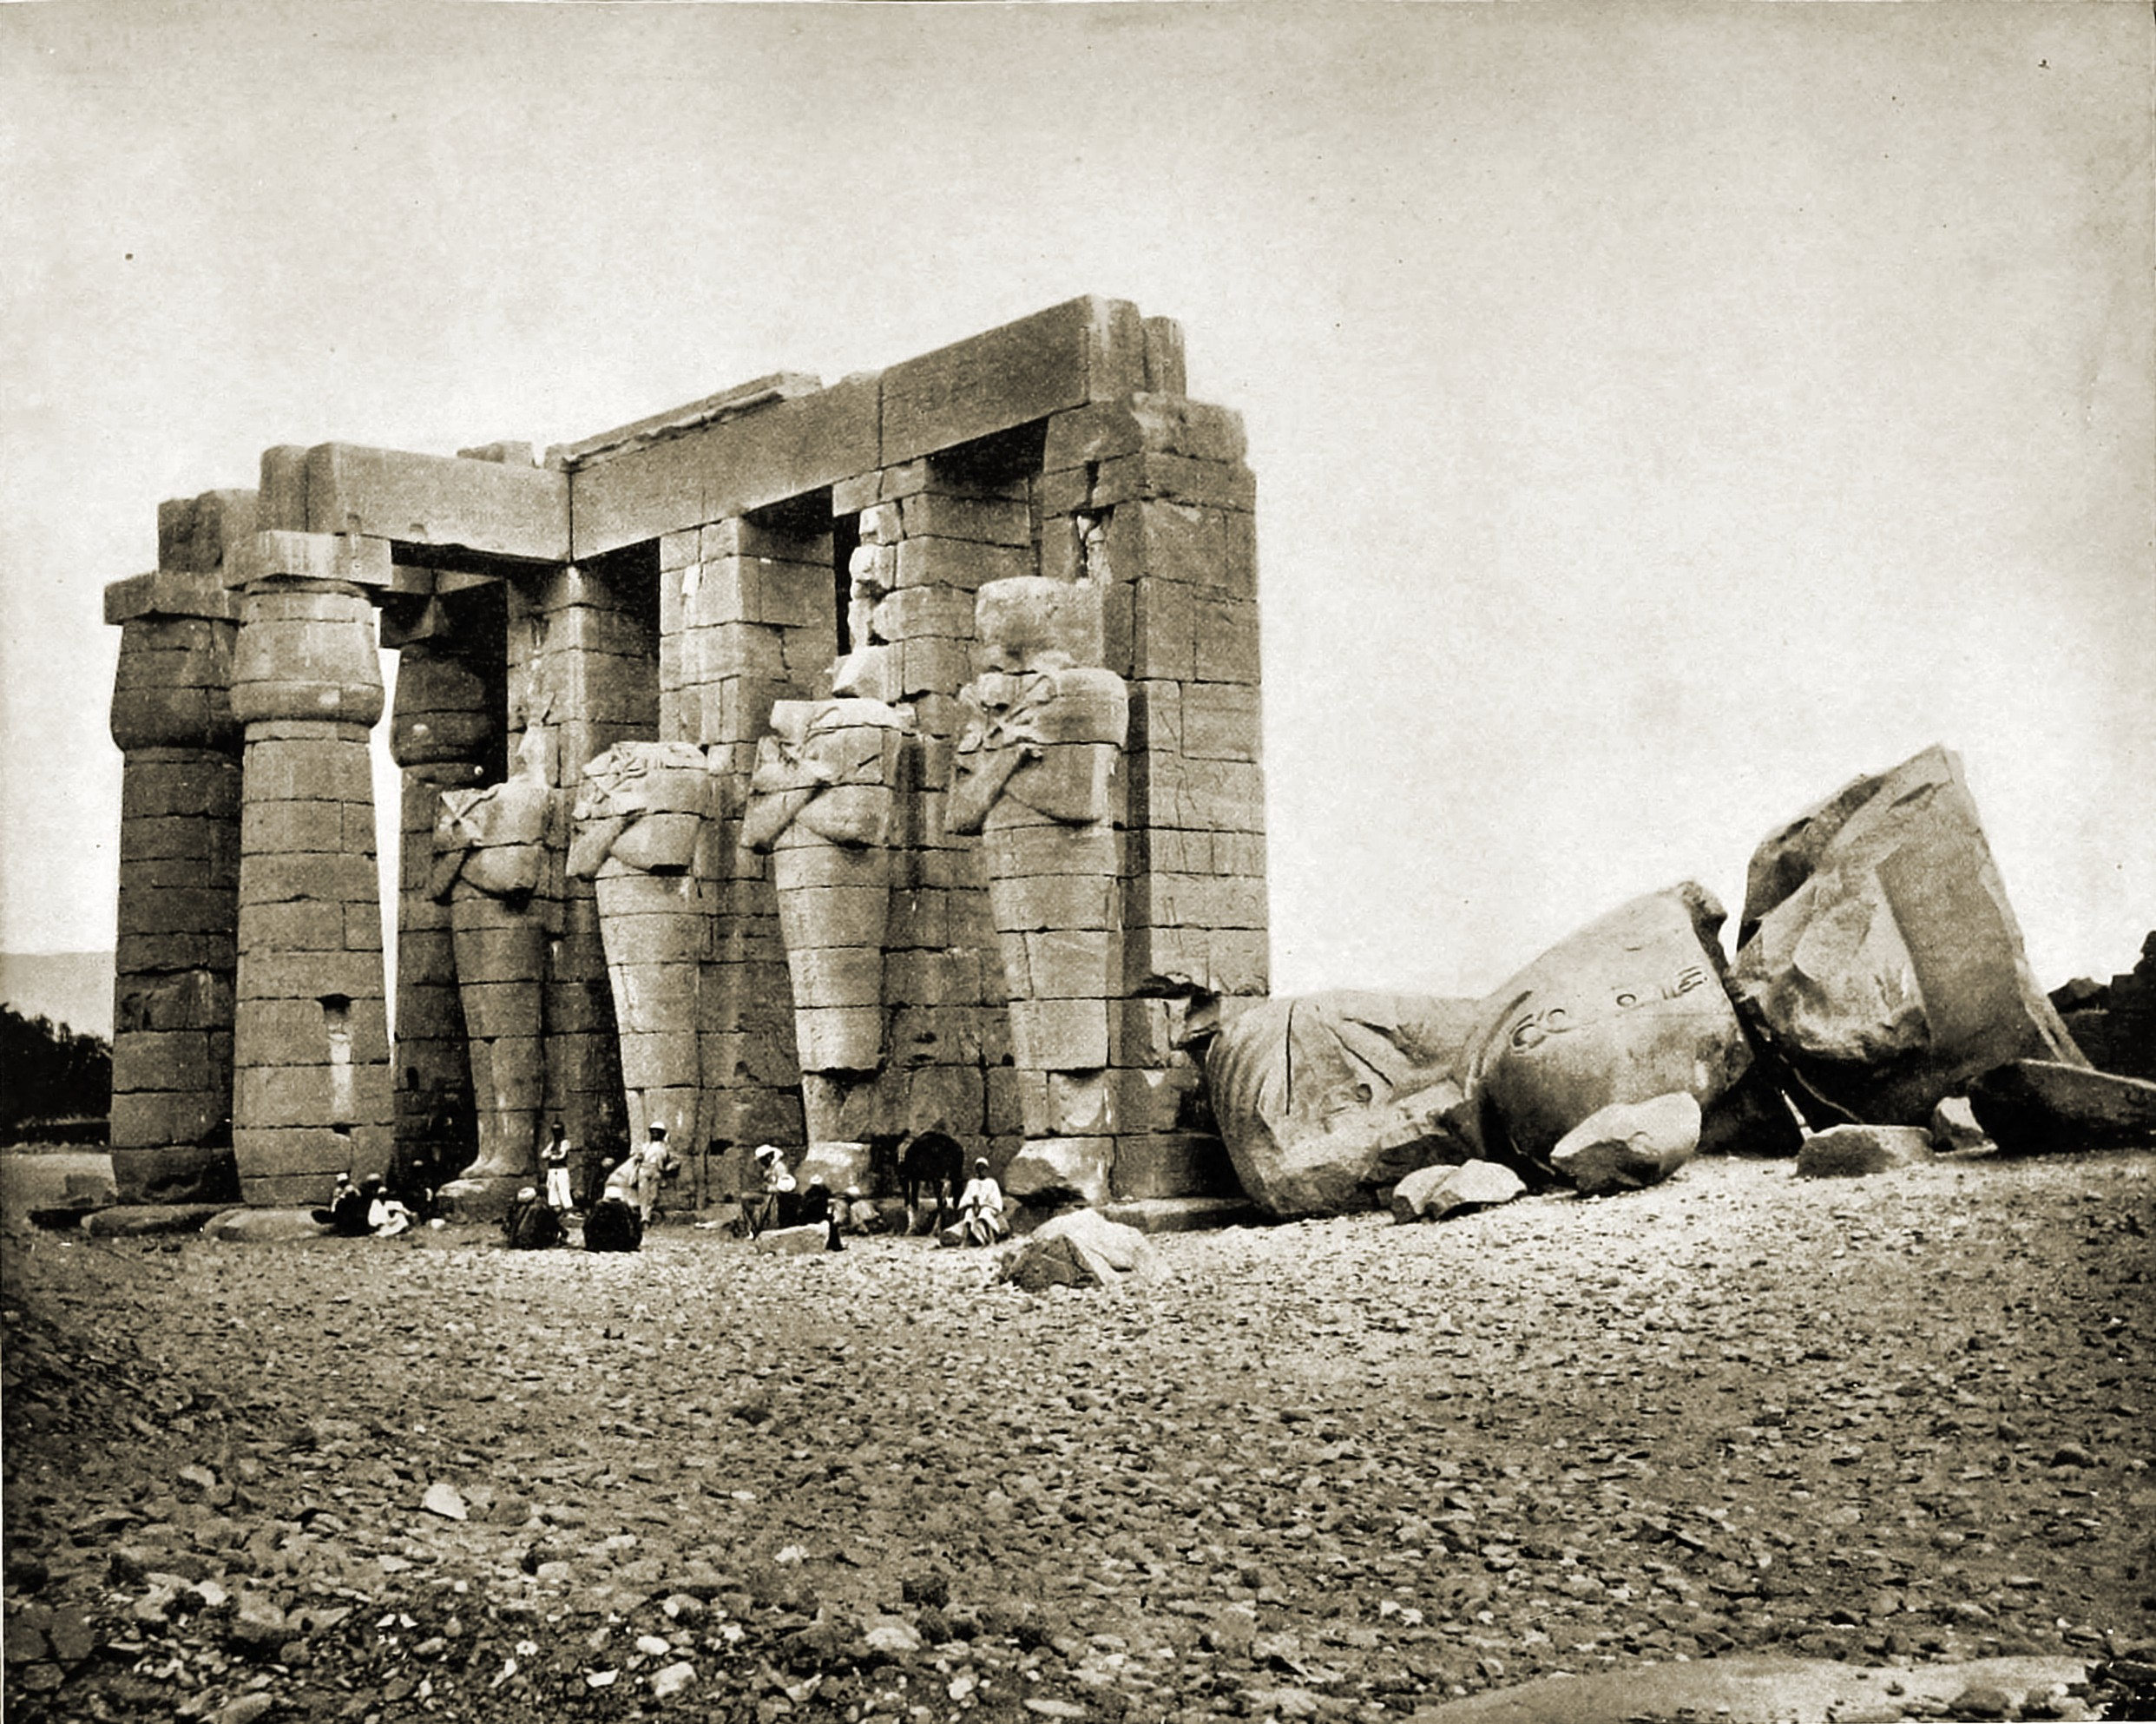 Ruins, Thebes, Egypt about 1892